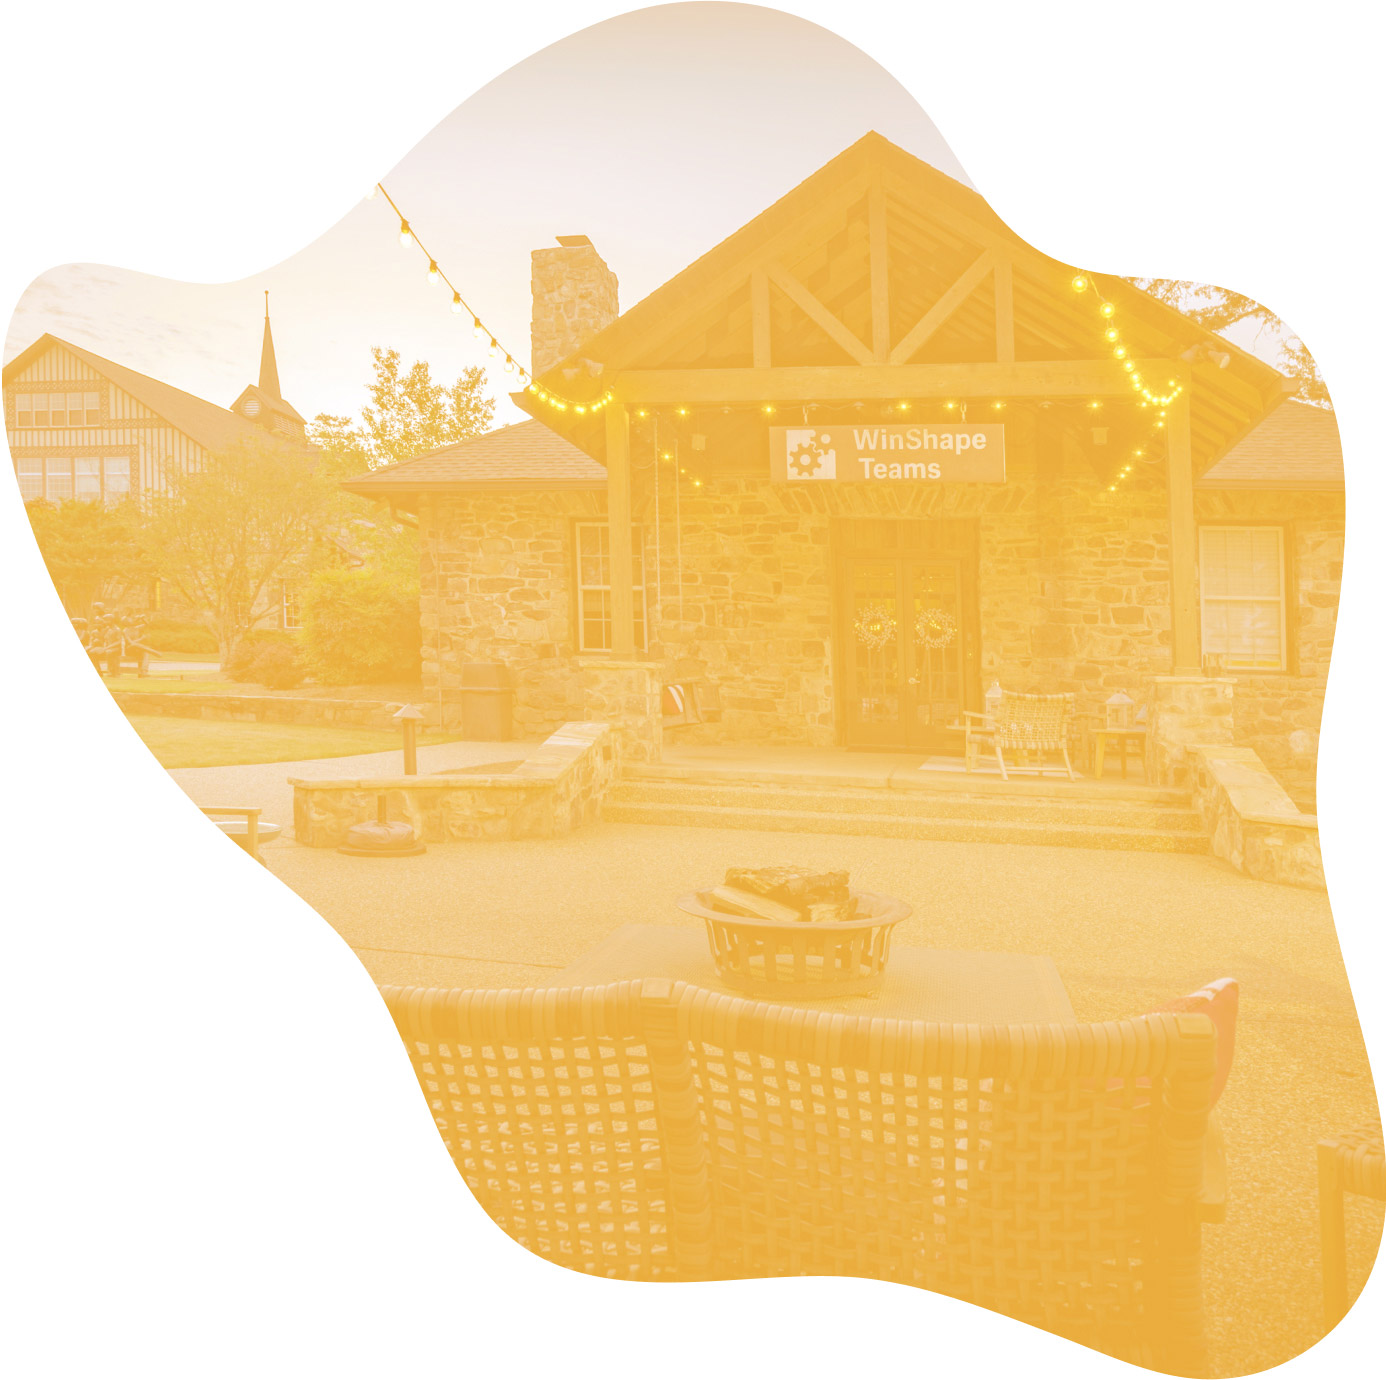 Exterior shot of the Winshape Teams headquarters. A yellow overlay has been applied to the image.